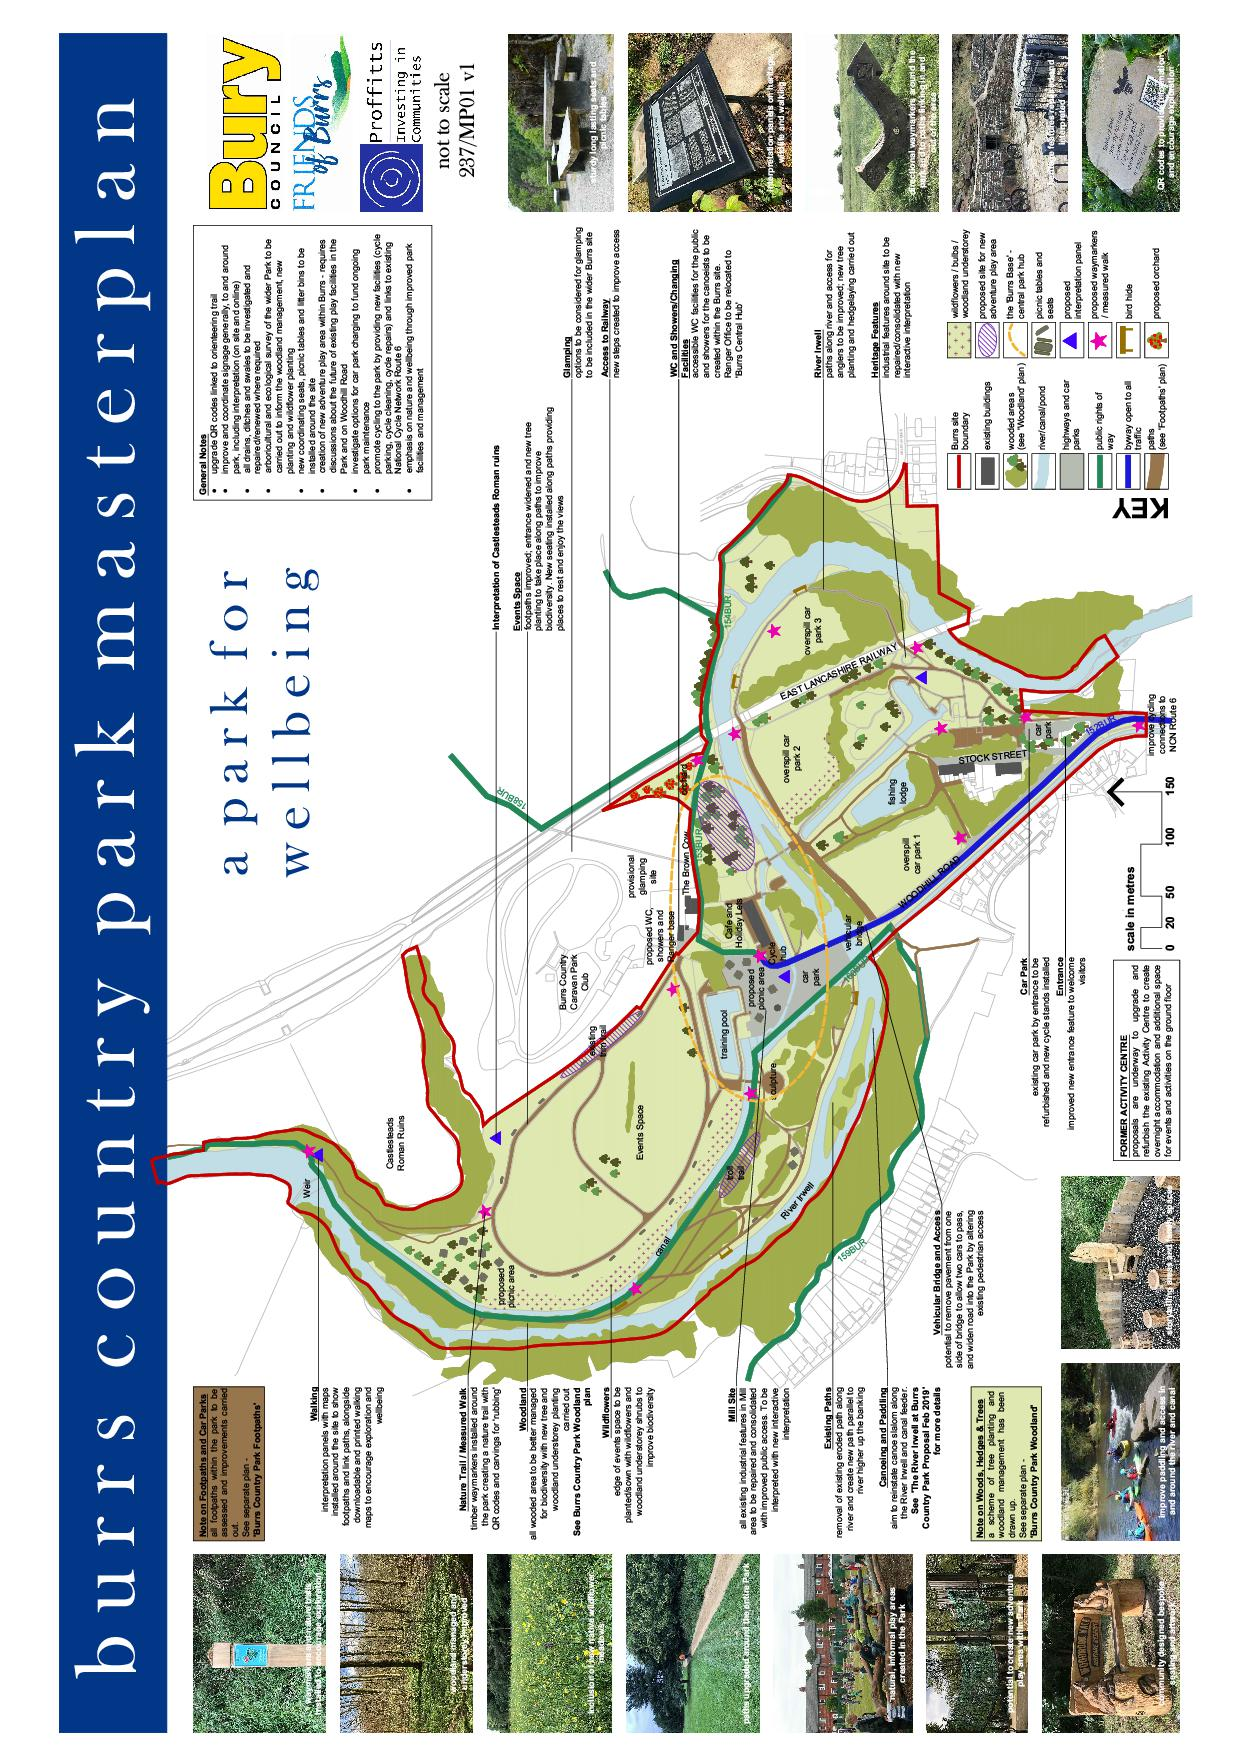 Burrs Country Park Masterplan